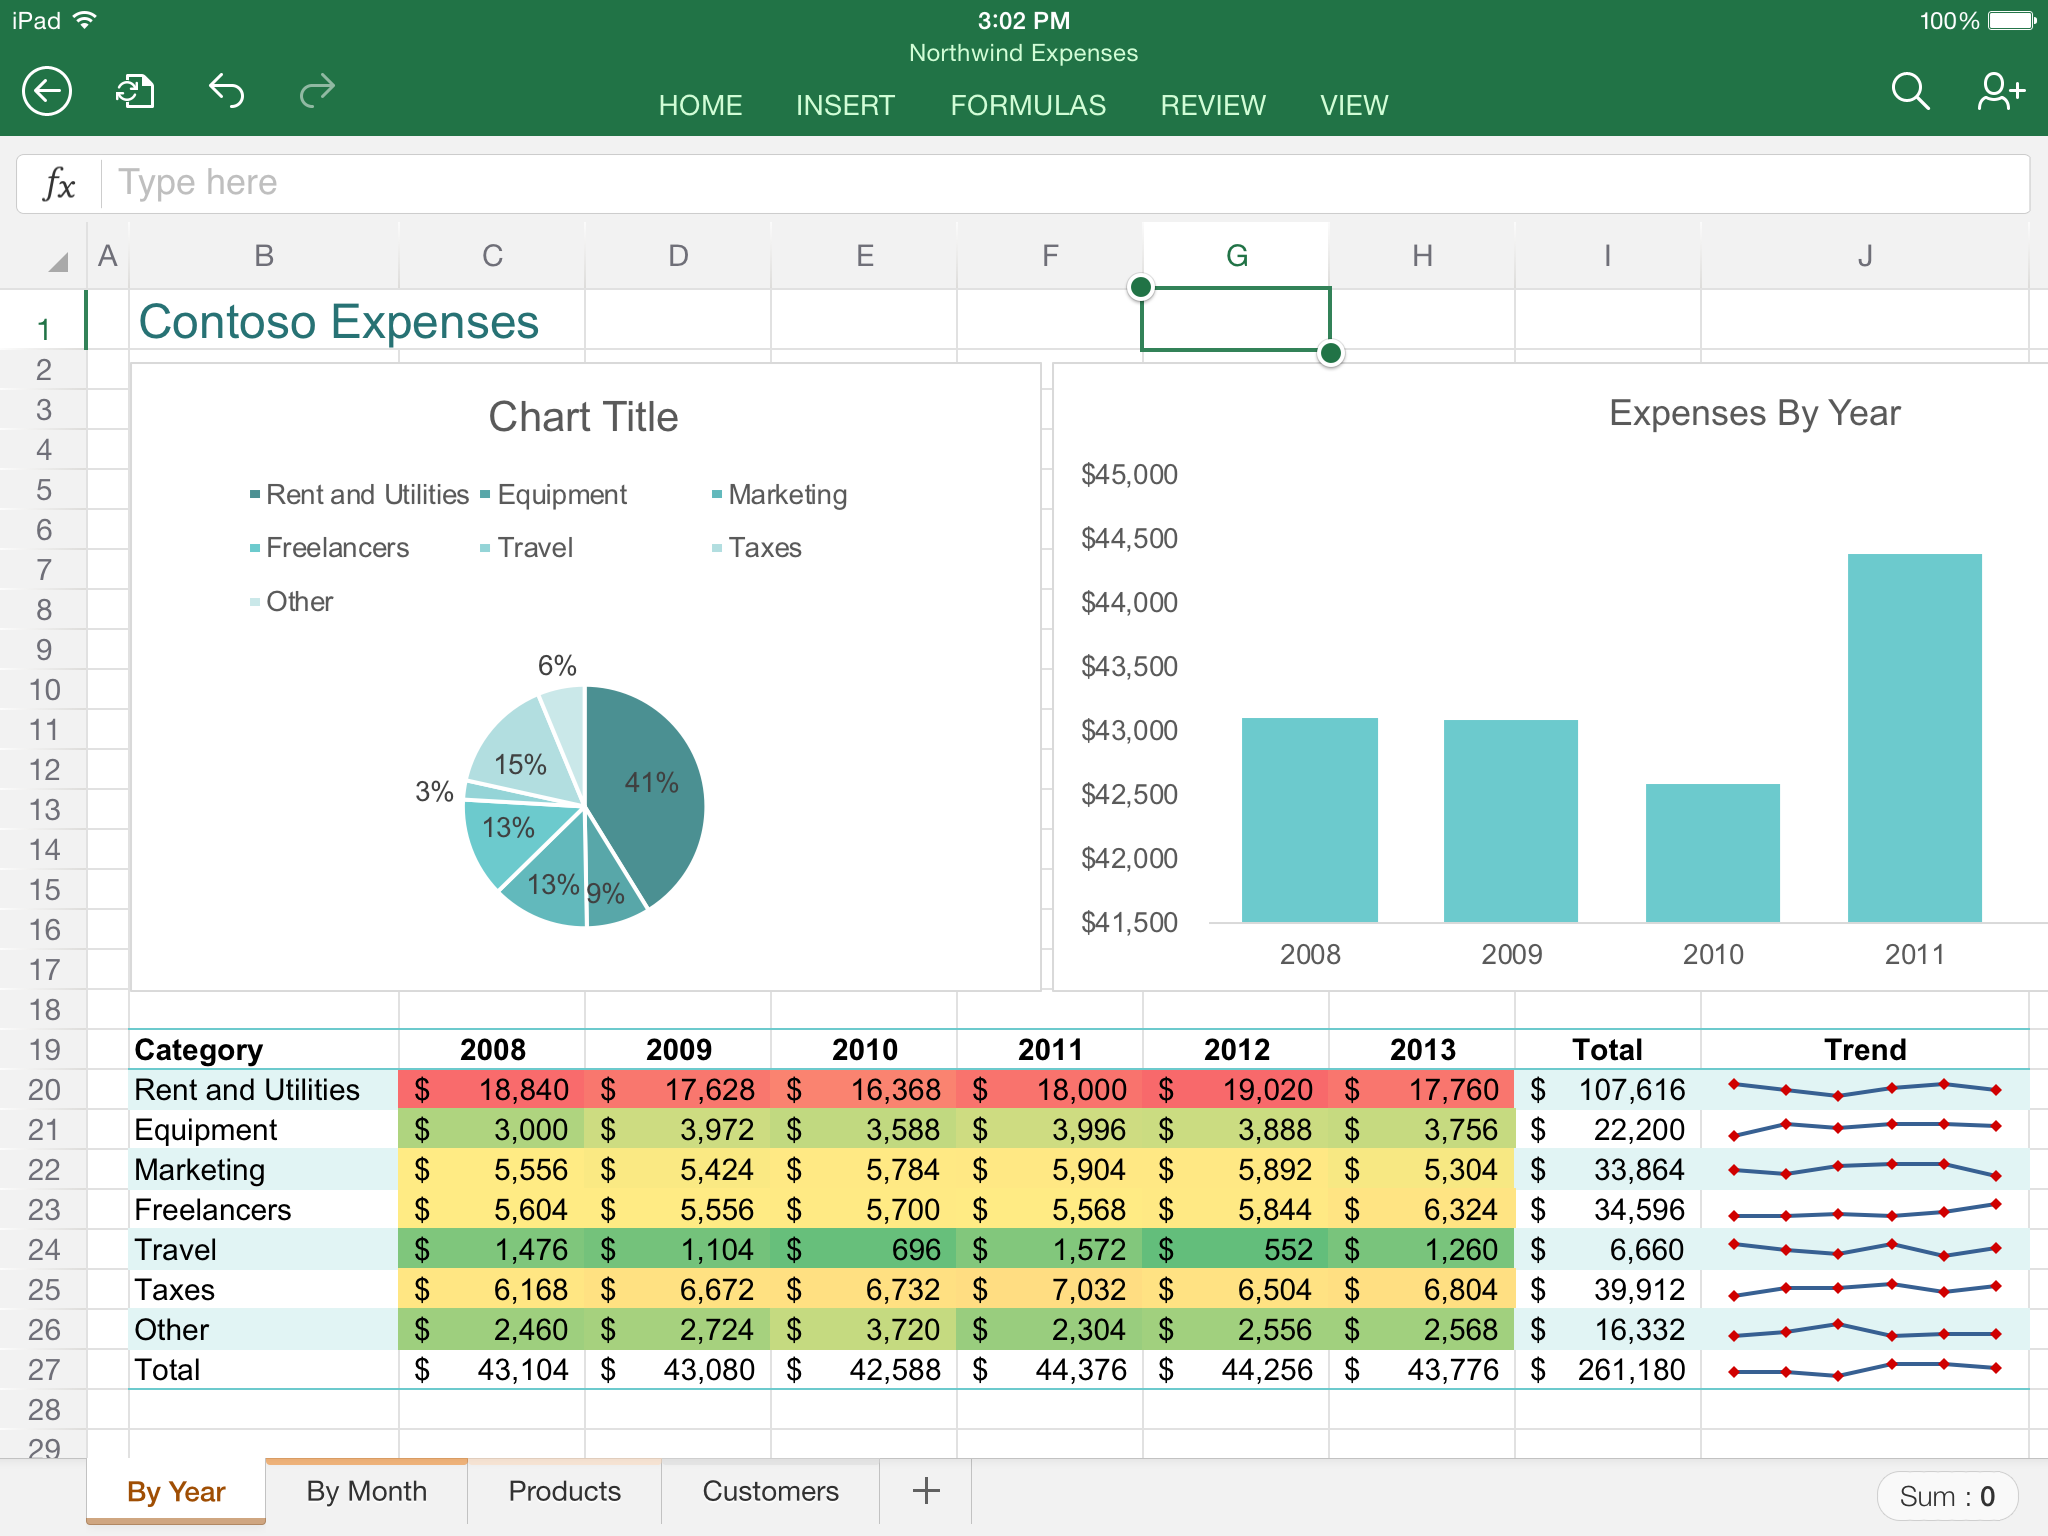 Ediblewildsus  Unique App Highlight Excel  Mobile Digital Now With Fair Excel In Action With Cute How To Wrap Columns In Excel Also Excel Insert Row With Formula In Addition Eigenvalues Excel And Excel Line Graph Tutorial As Well As Family Budget Spreadsheet Excel Additionally Excel Calculate Growth Rate From Youstonybrookedu With Ediblewildsus  Fair App Highlight Excel  Mobile Digital Now With Cute Excel In Action And Unique How To Wrap Columns In Excel Also Excel Insert Row With Formula In Addition Eigenvalues Excel From Youstonybrookedu